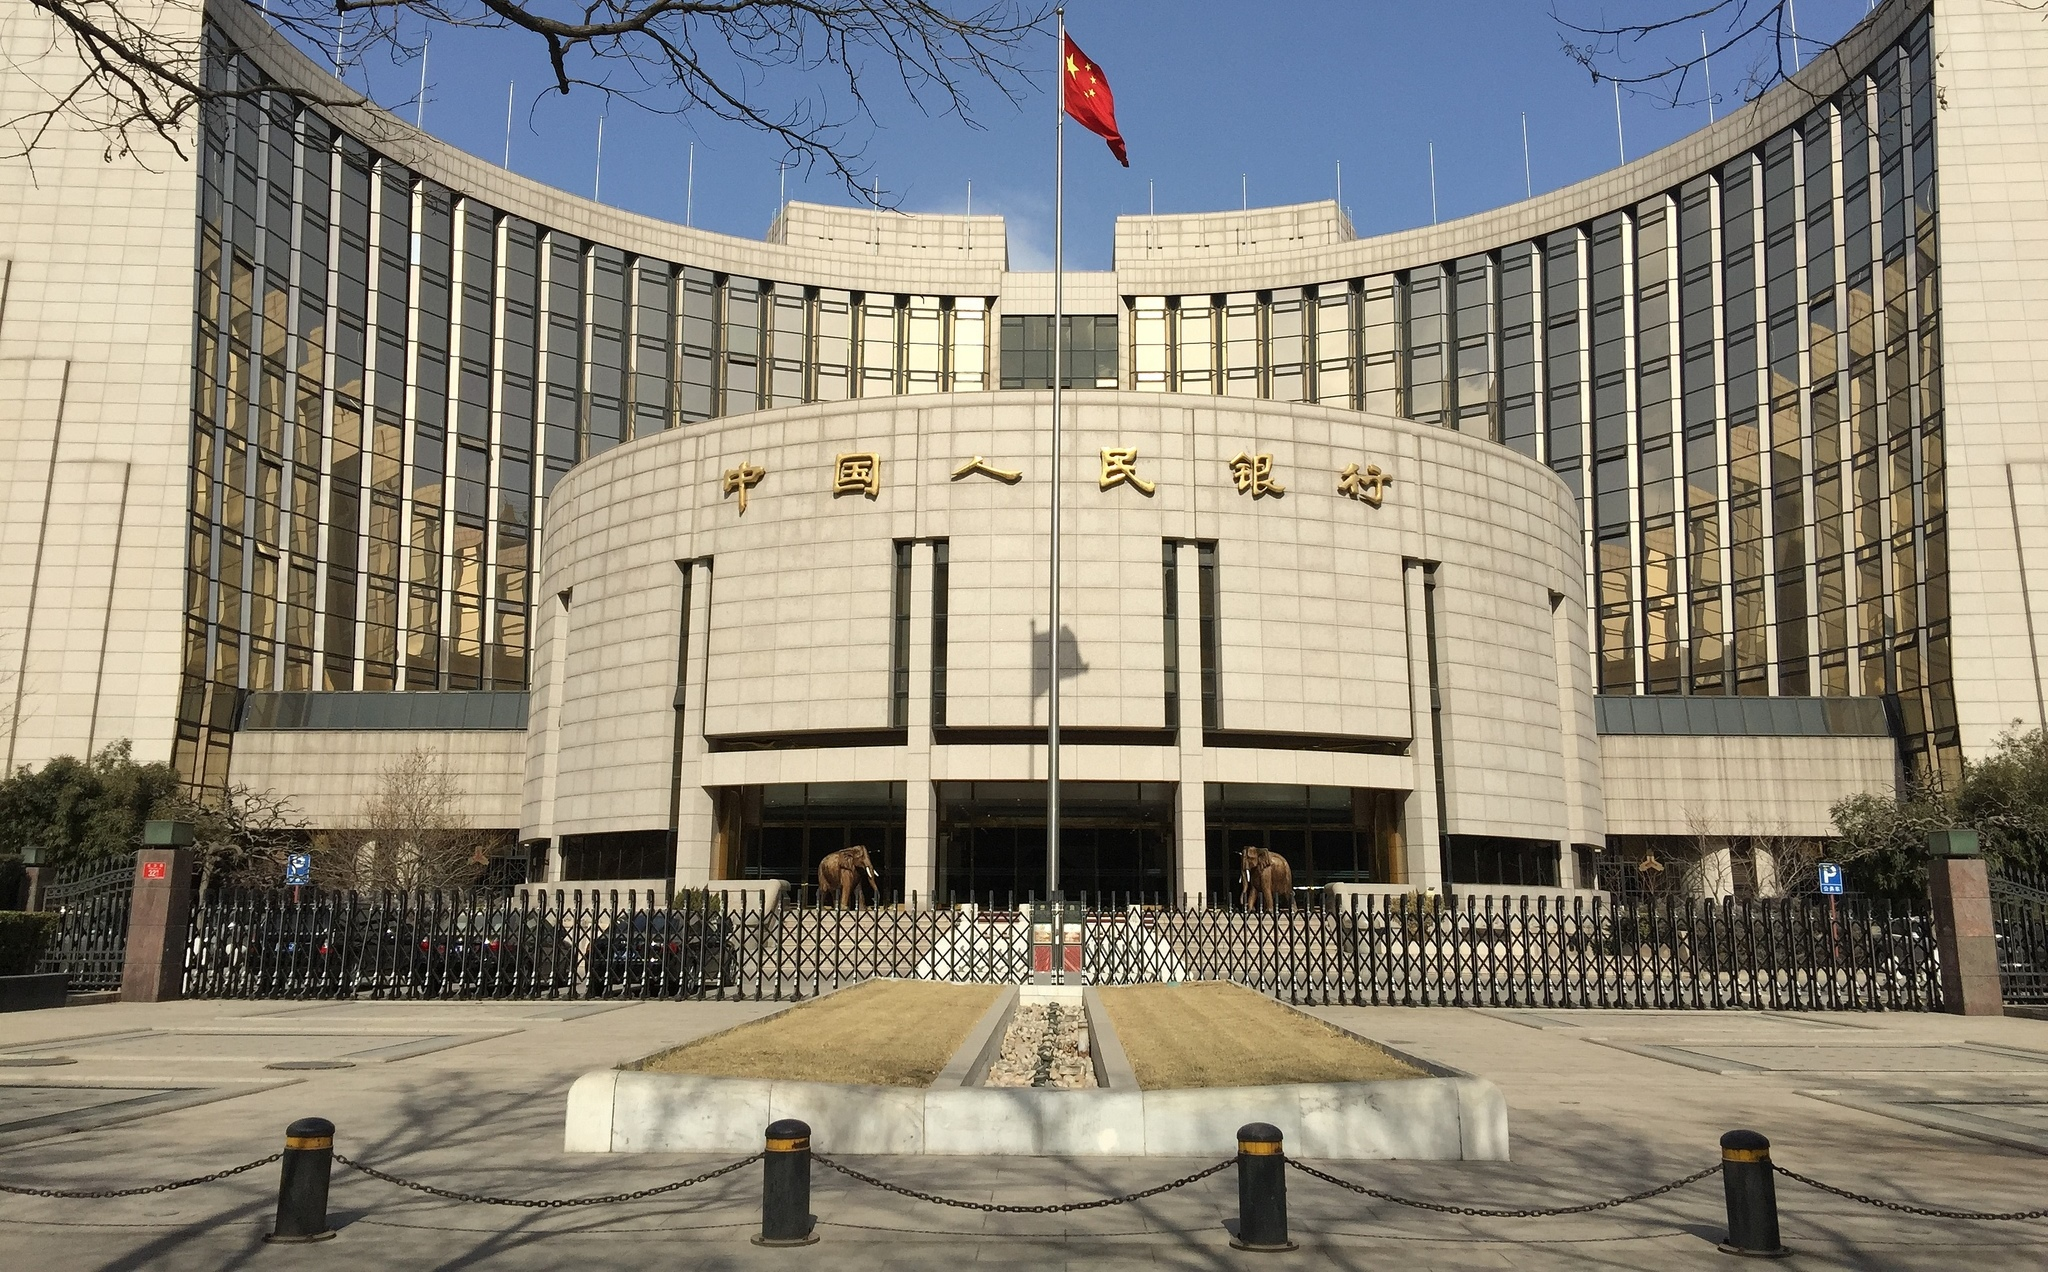 People's Bank of China headquarters, Beijing. (Flickr/bflshadow)